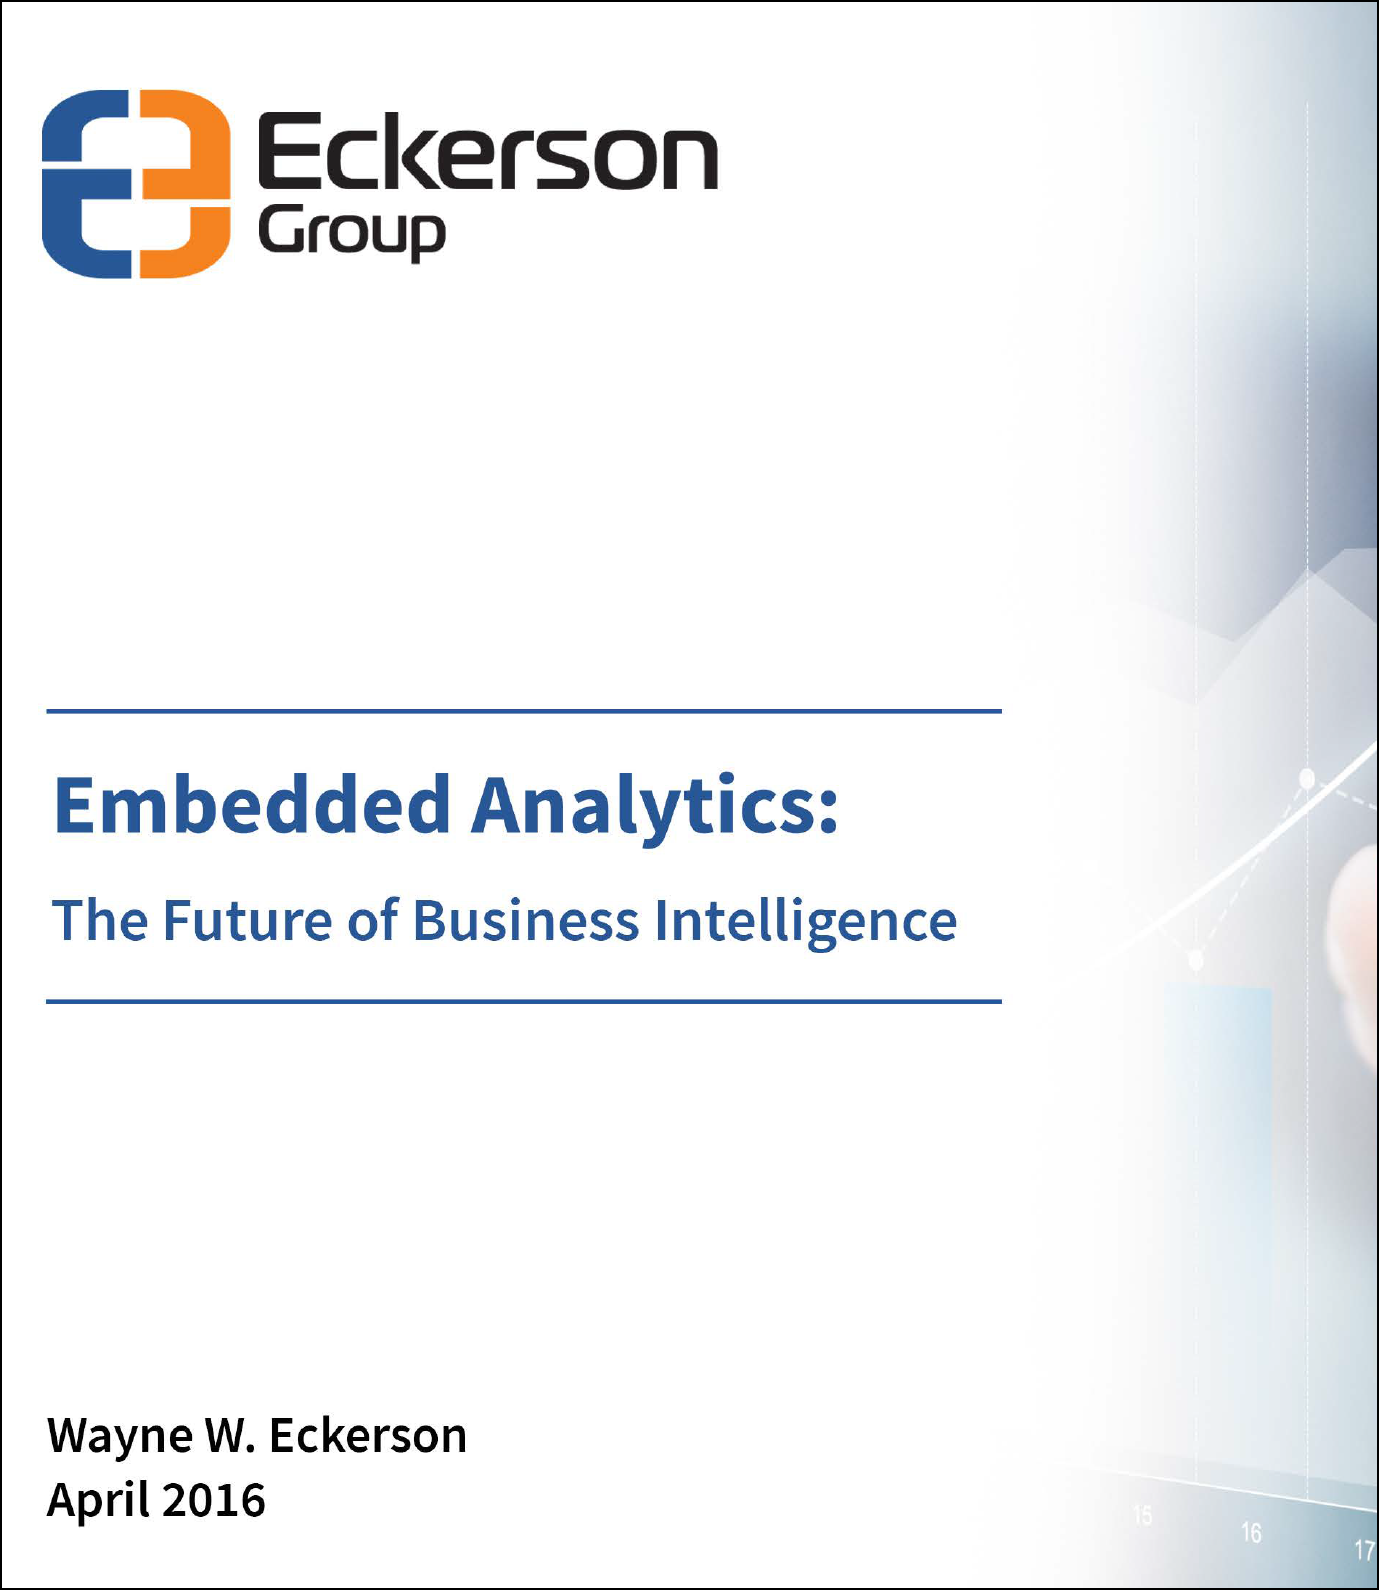 The Future of Business Intelligence